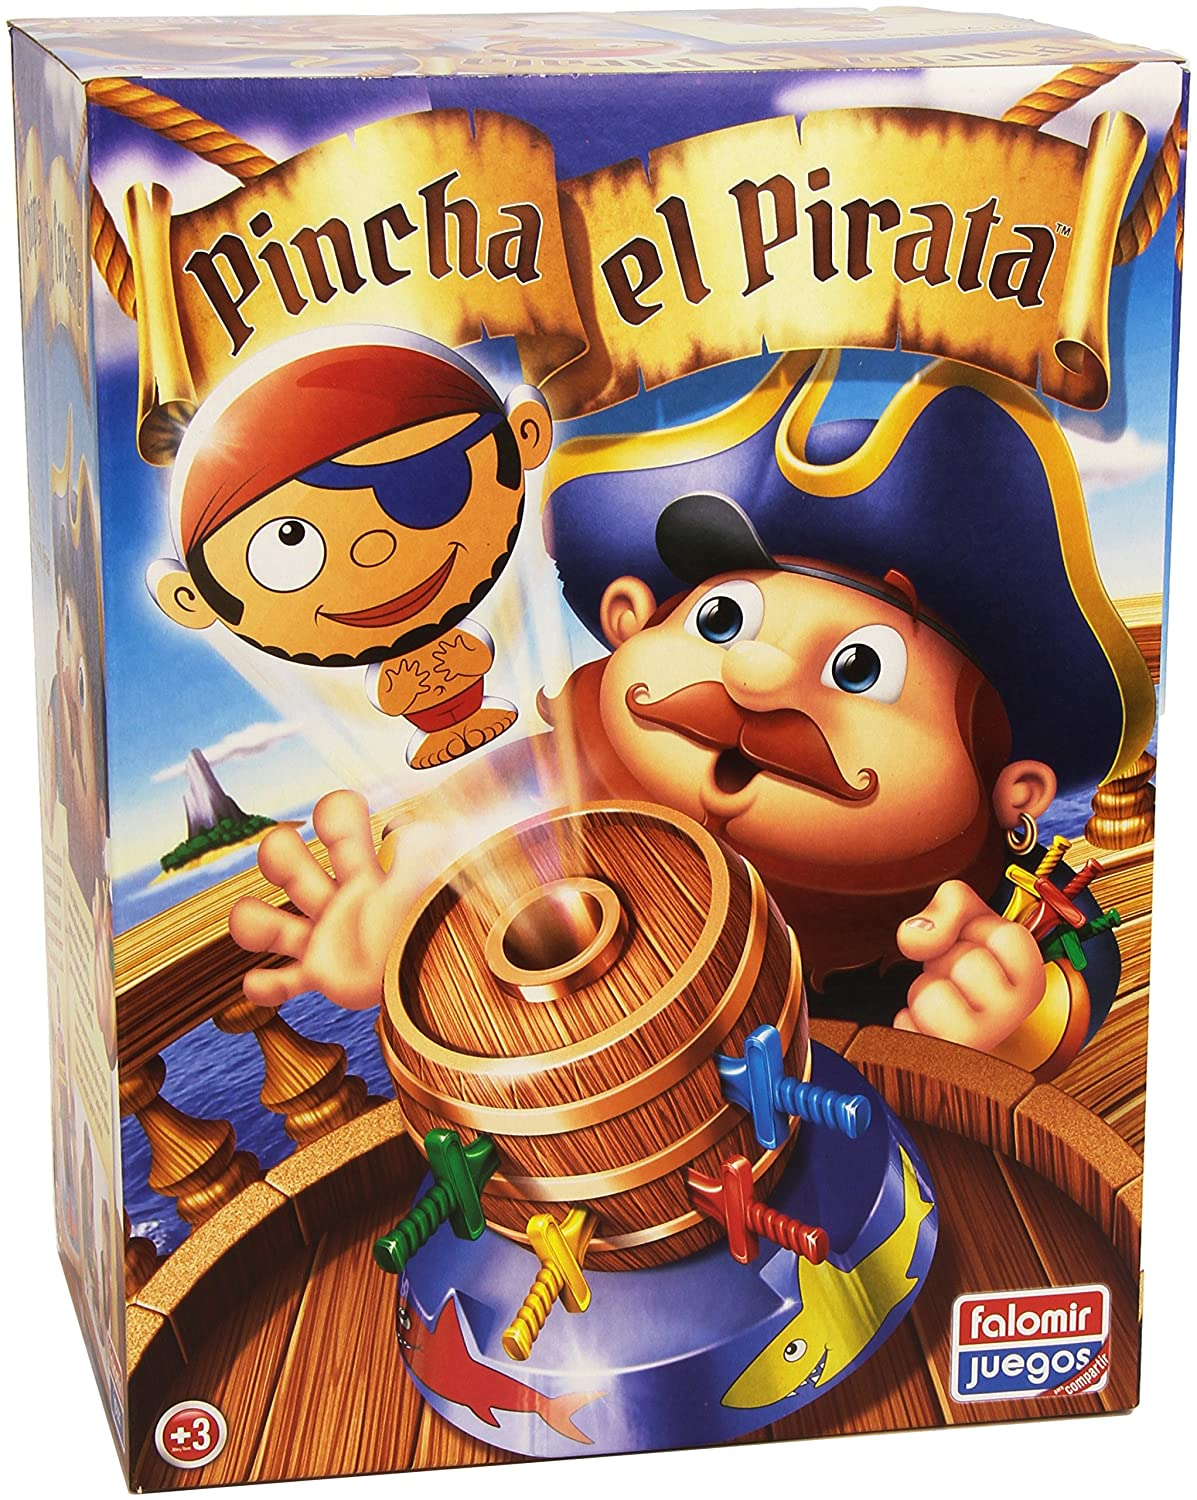 Pincha el Pirata https://amzn.to/2zKSyBp